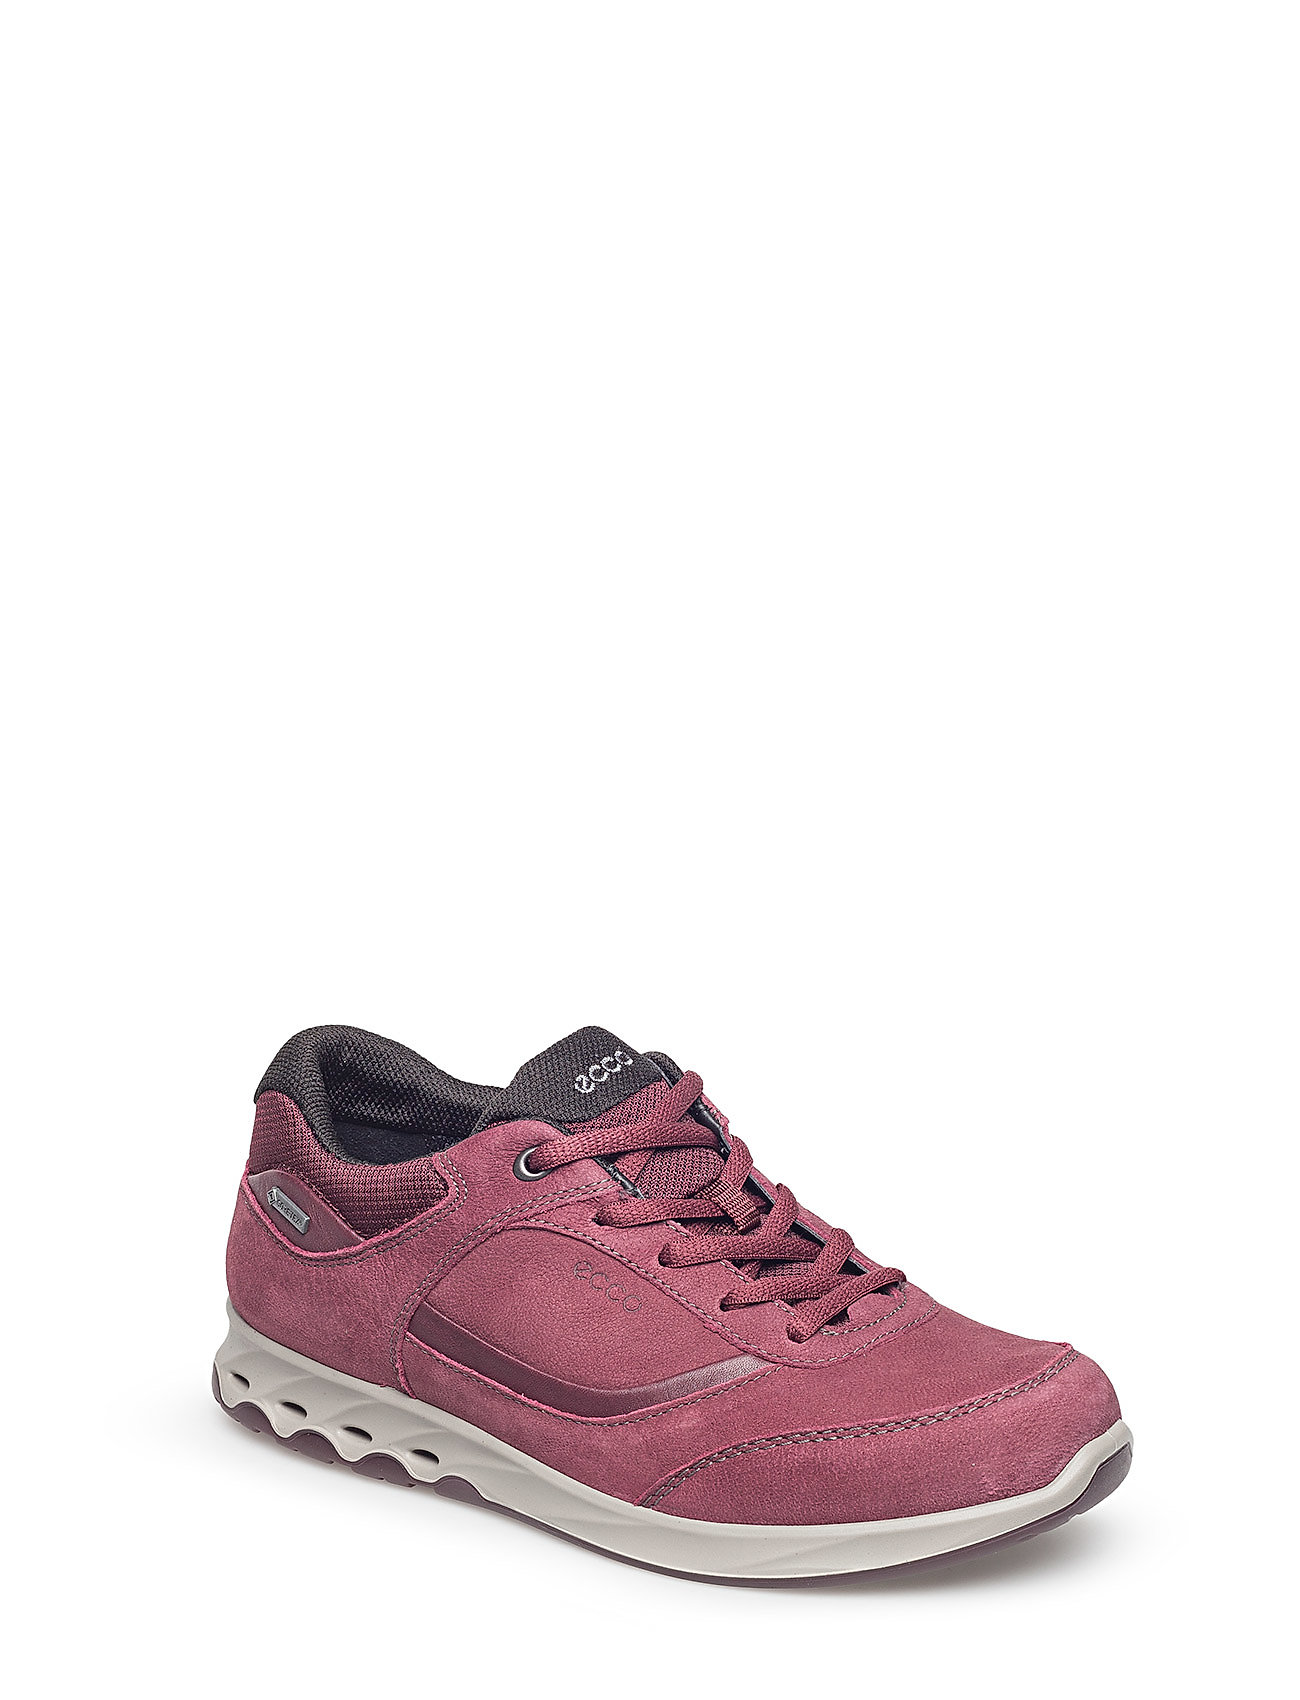 Image of Wayfly Low-top Sneakers Rød ECCO (3035710633)